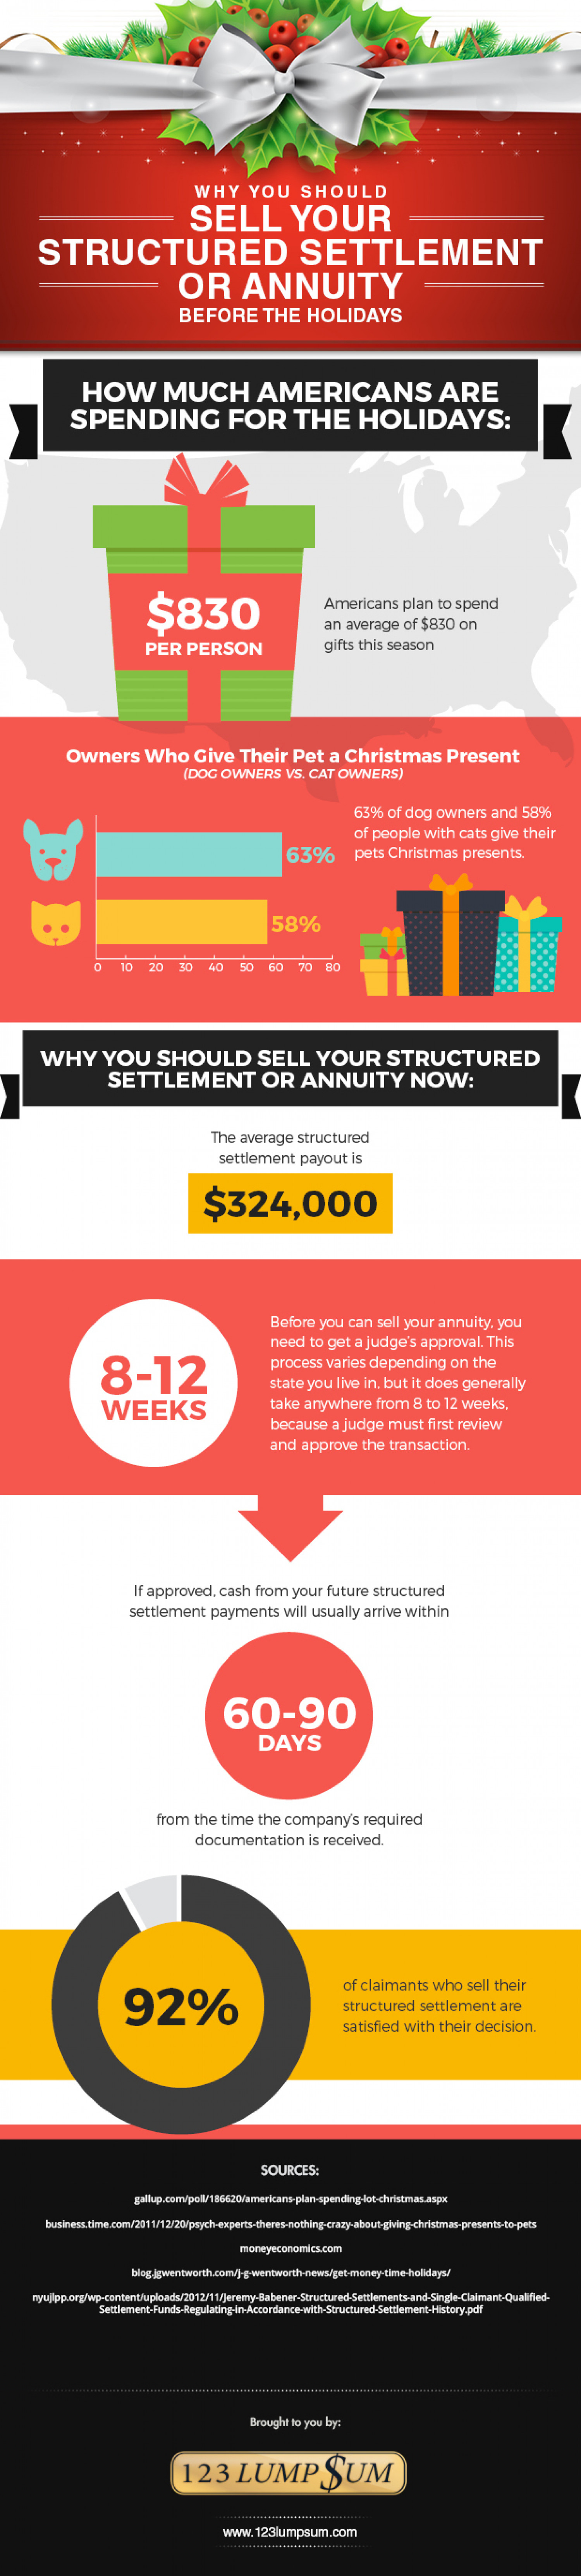 Why You Should Sell Your Structured Settlement or Annuity Before the Holidays Infographic